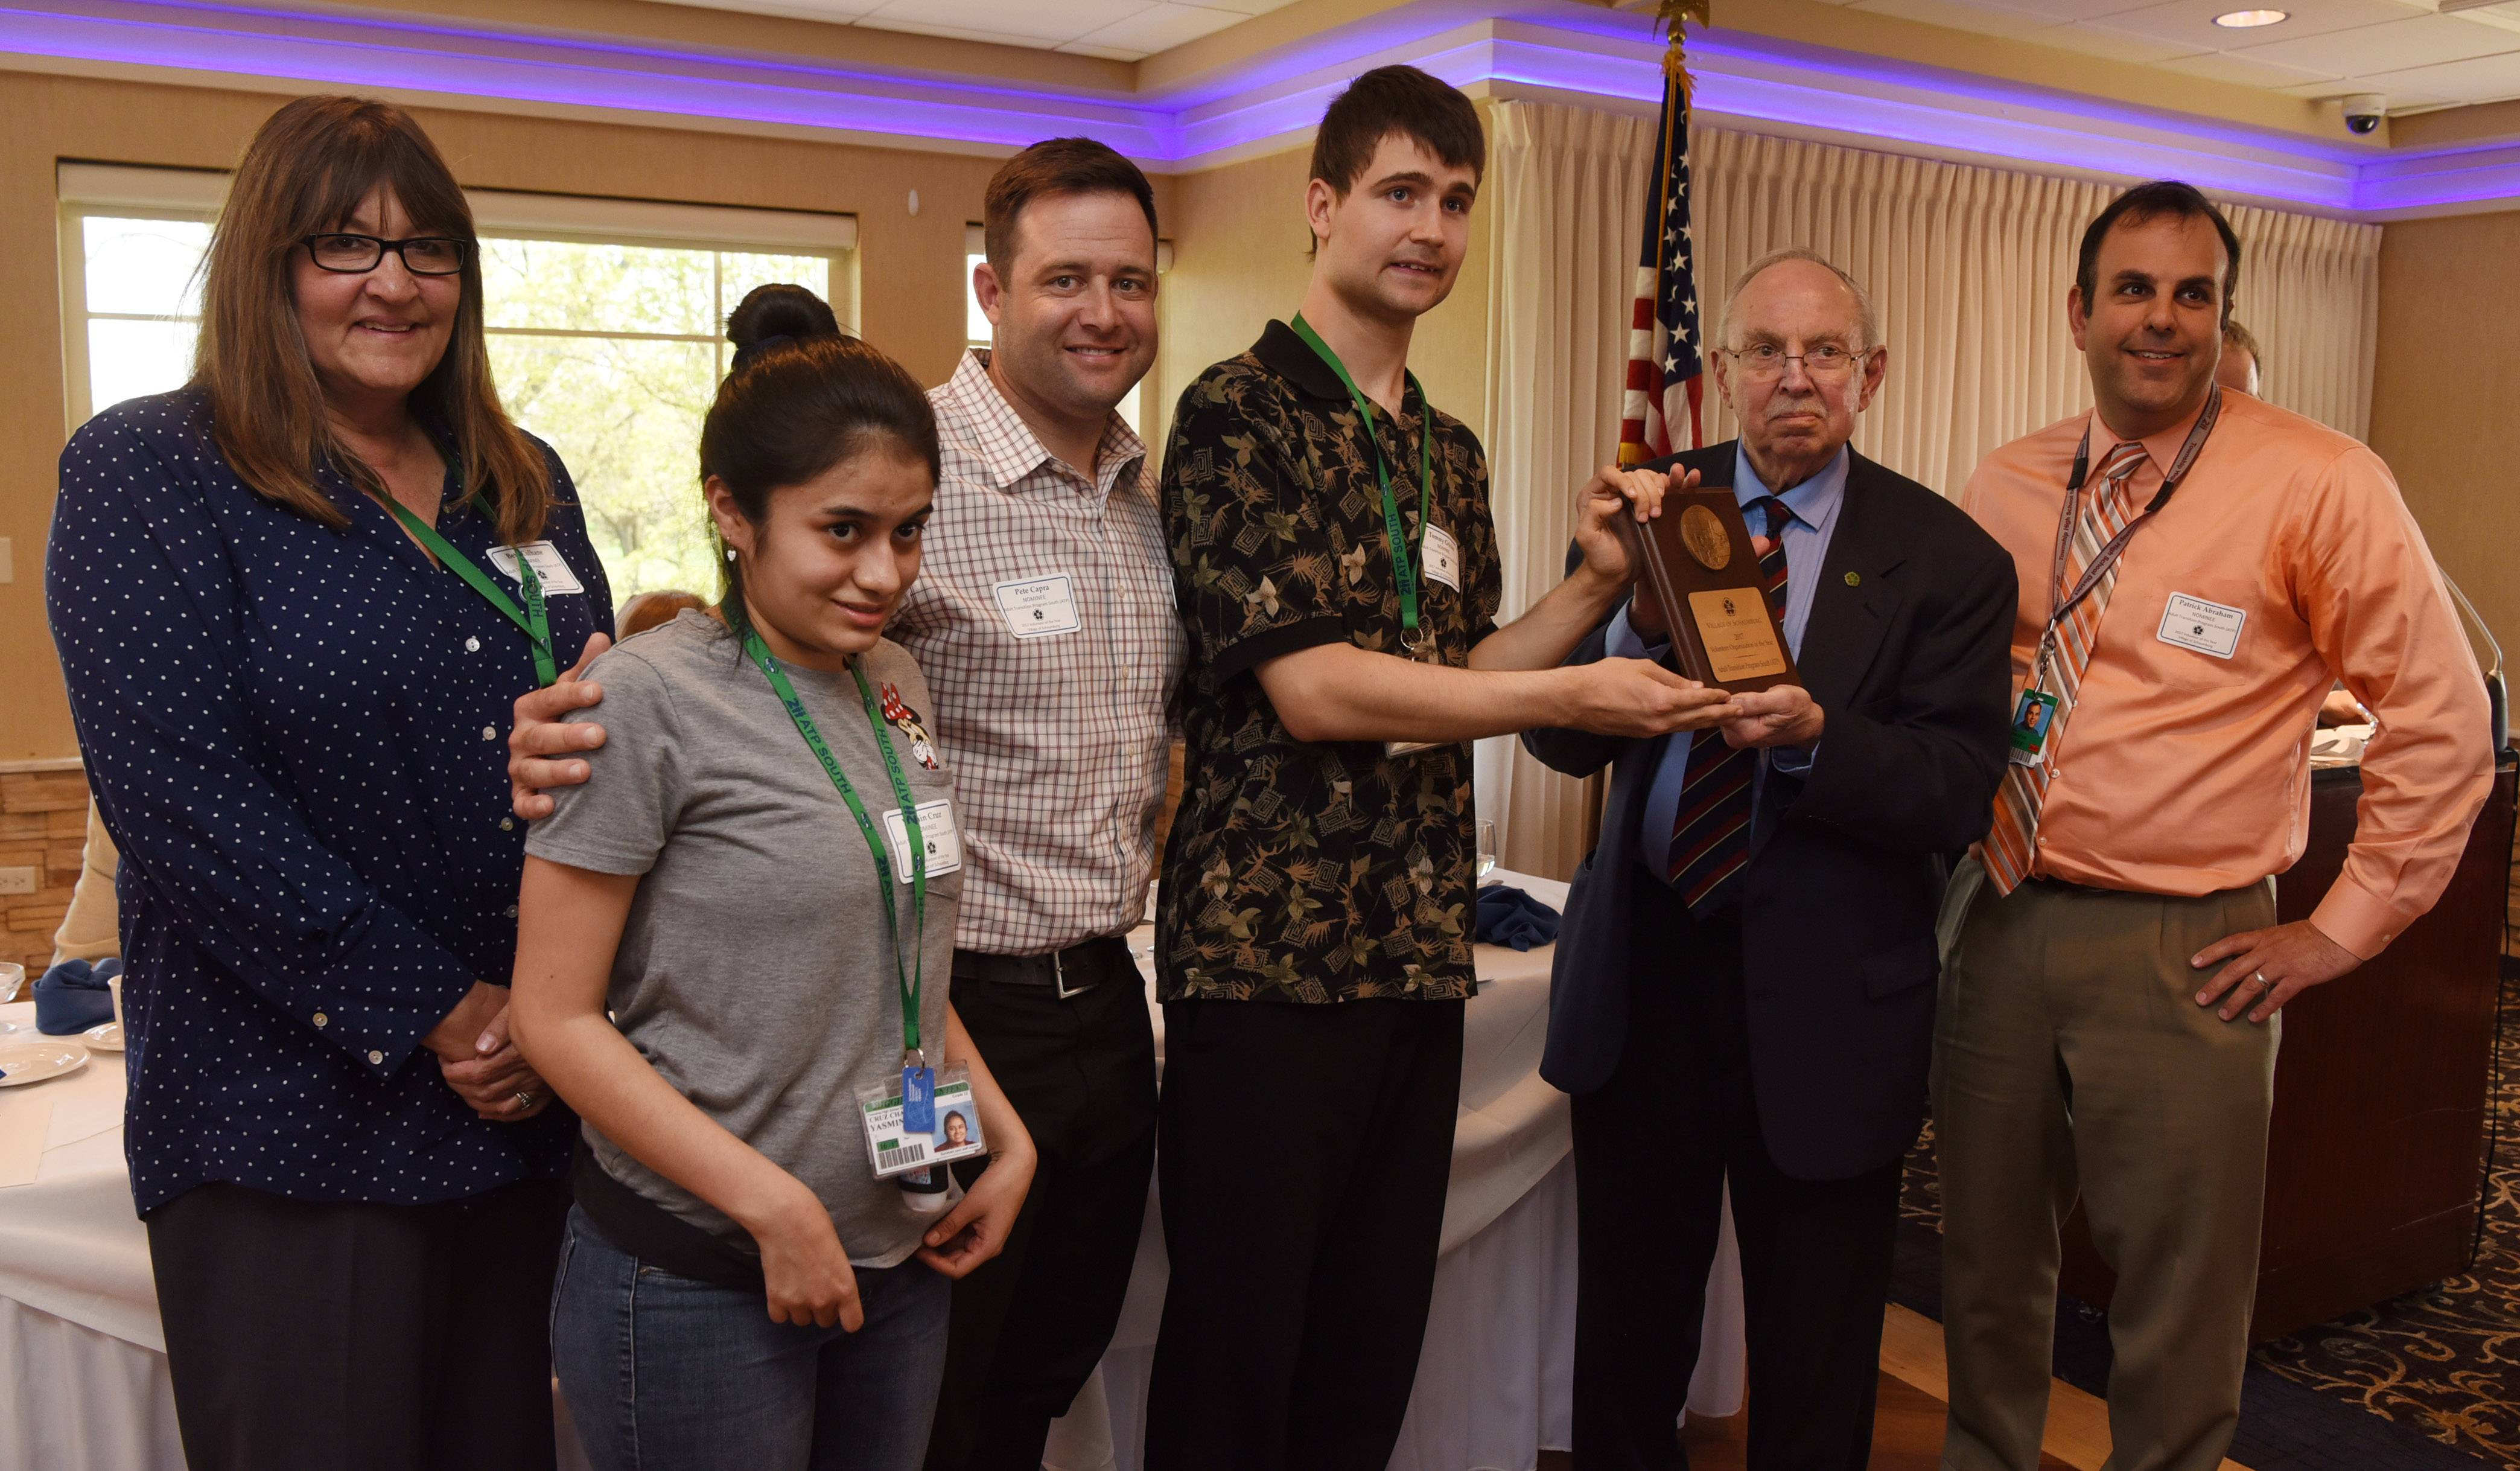 Schaumburg Mayor Al Larson, second from right, stands with the 2017 Organization Award recipients from Palatine-Schaumburg High School District 211's Adult Transition Program South, which includes, from left, Beth Culhane, Yasmin Cruz, Pete Capra, Tommy Gricius and Patrick Abraham during Schaumburg's annual Volunteer of the Year Luncheon Thursday at Chandler's in Schaumburg.